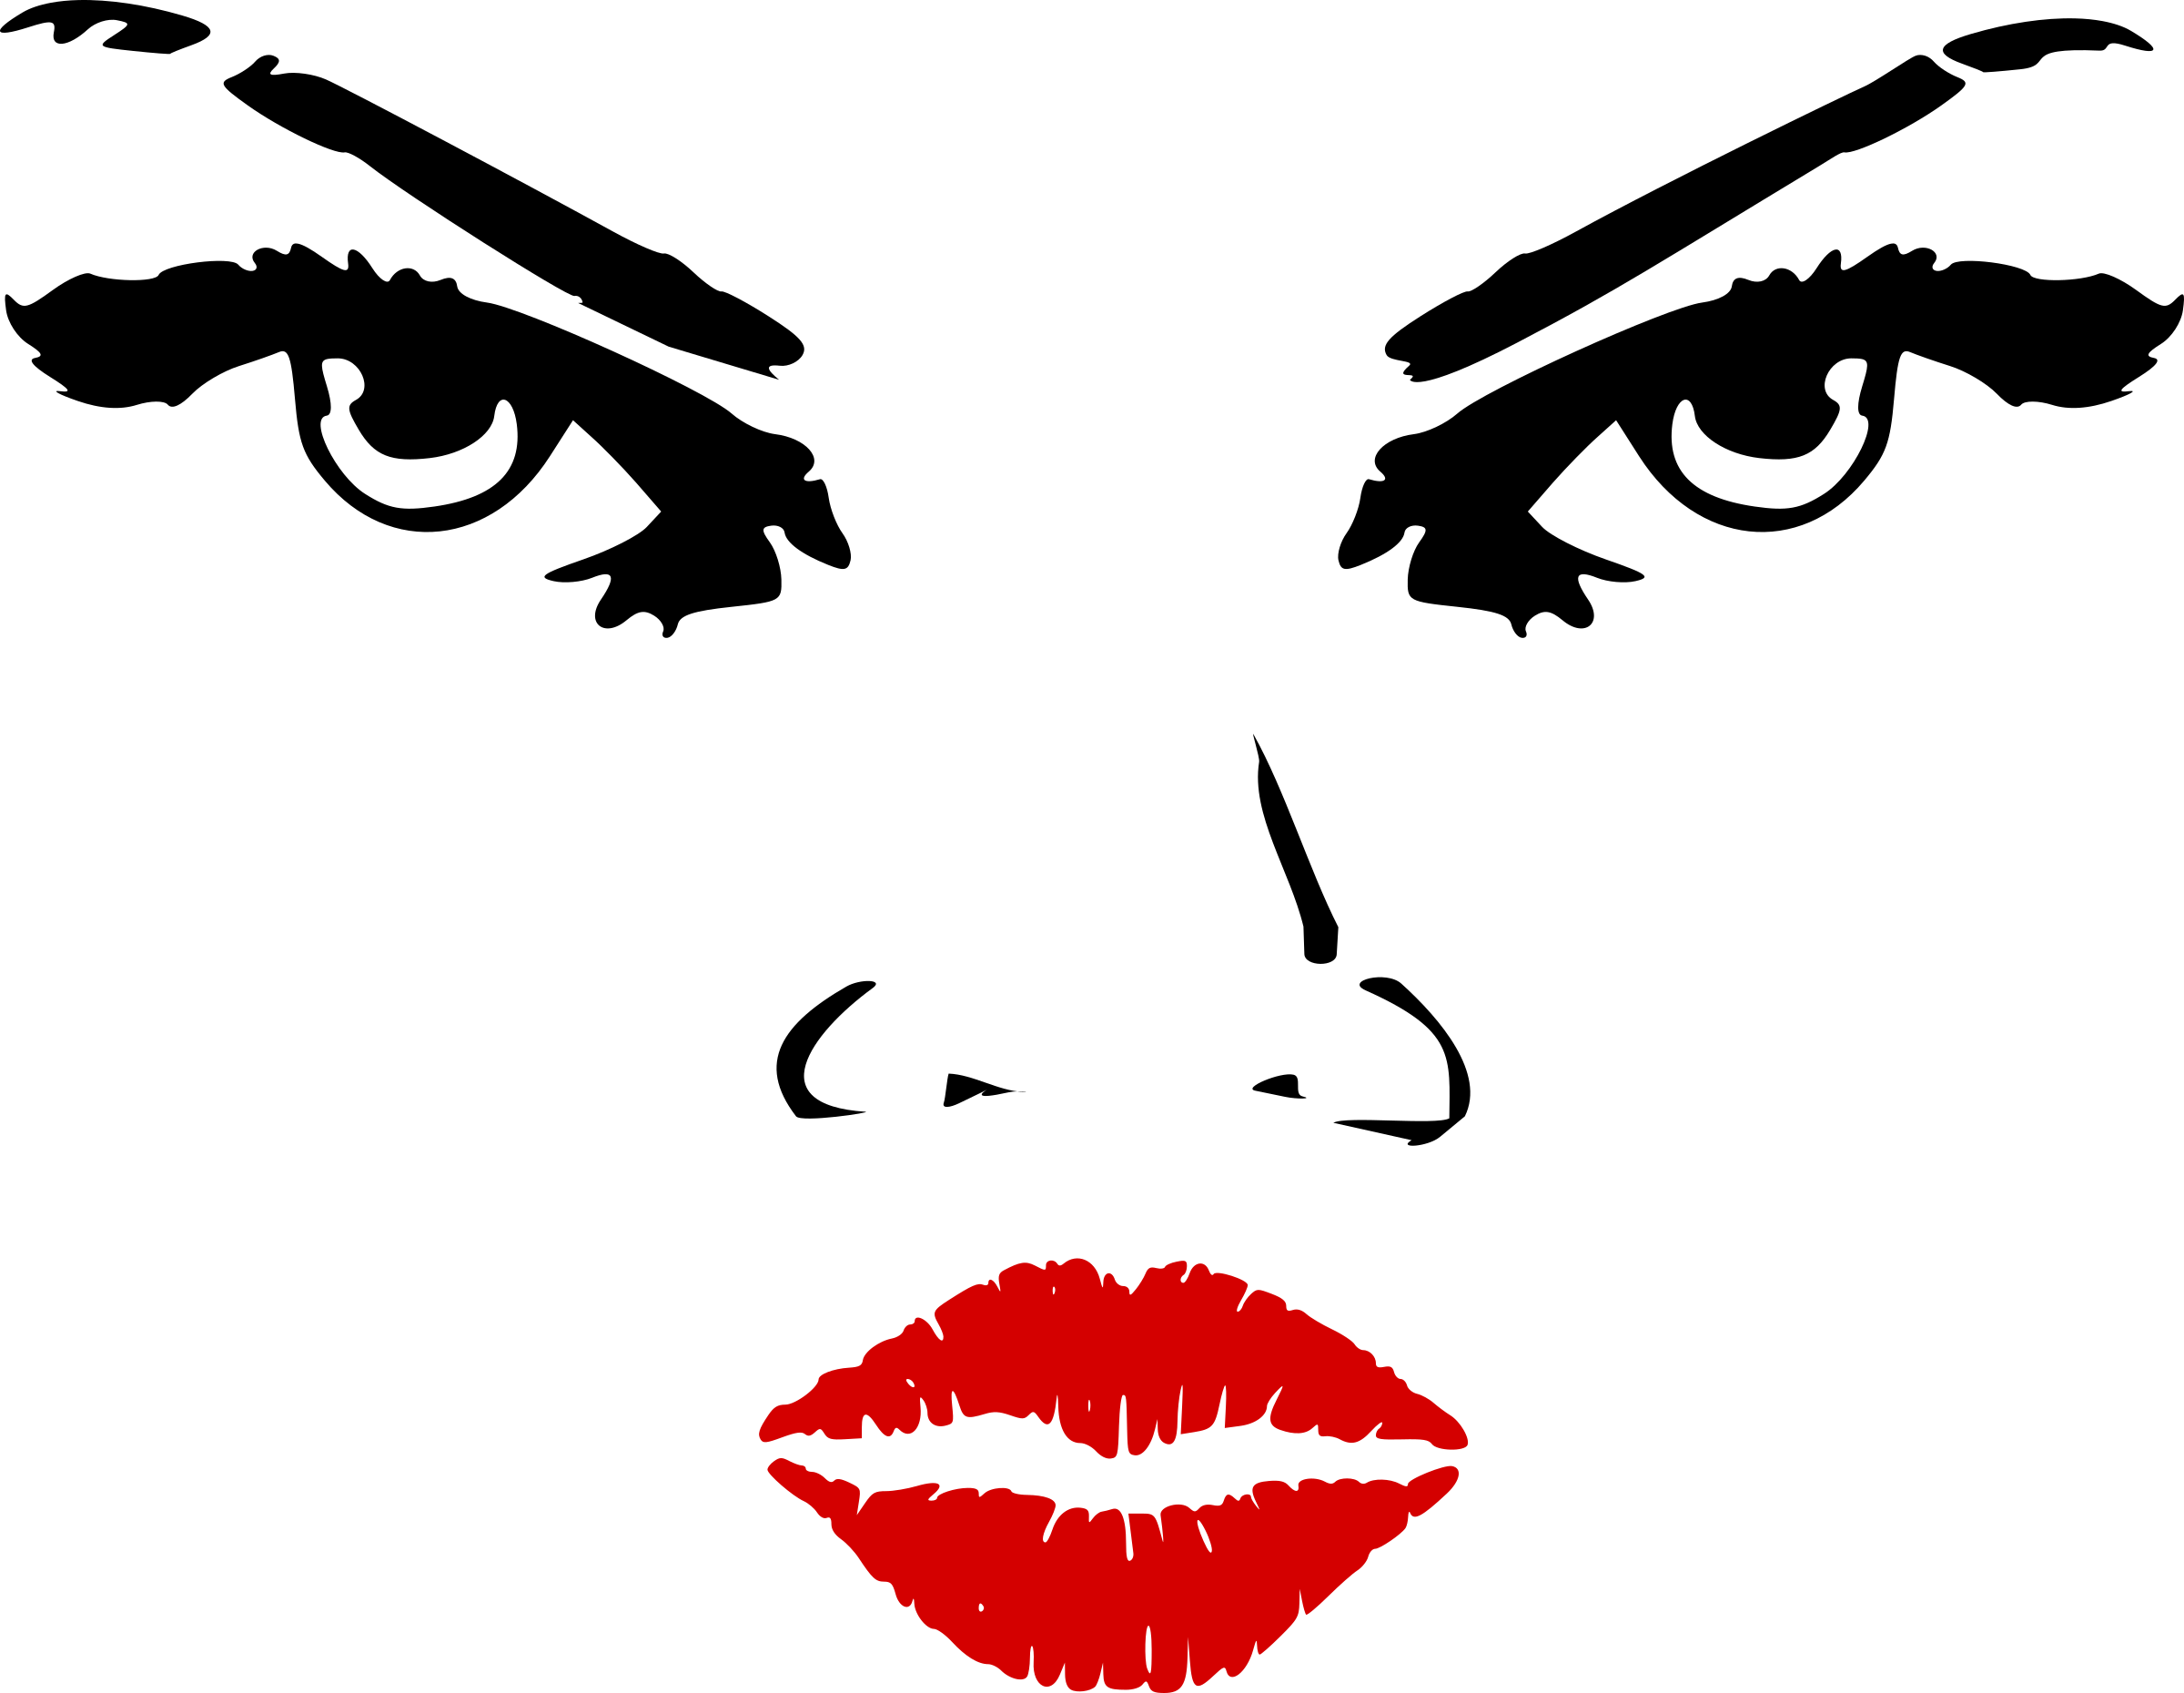 Lady clipart eyes. Woman nose lips big